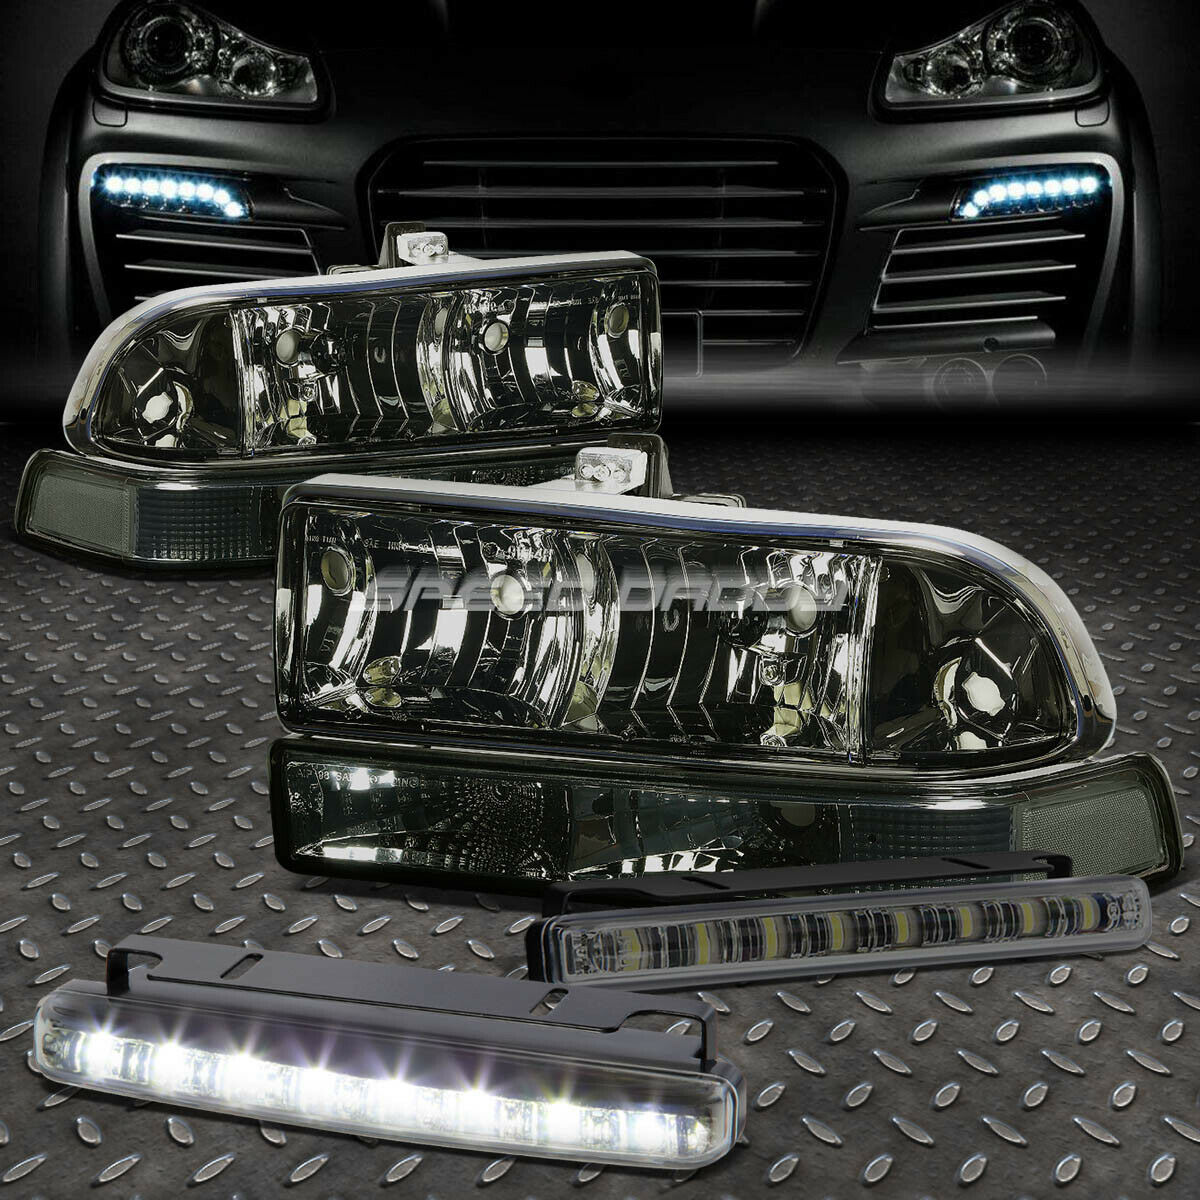 Smoked Housing Headlight Bumper Signal Led Fog Light For 98 04 Chevy S10 Blazer 1 Of 10only 0 Available